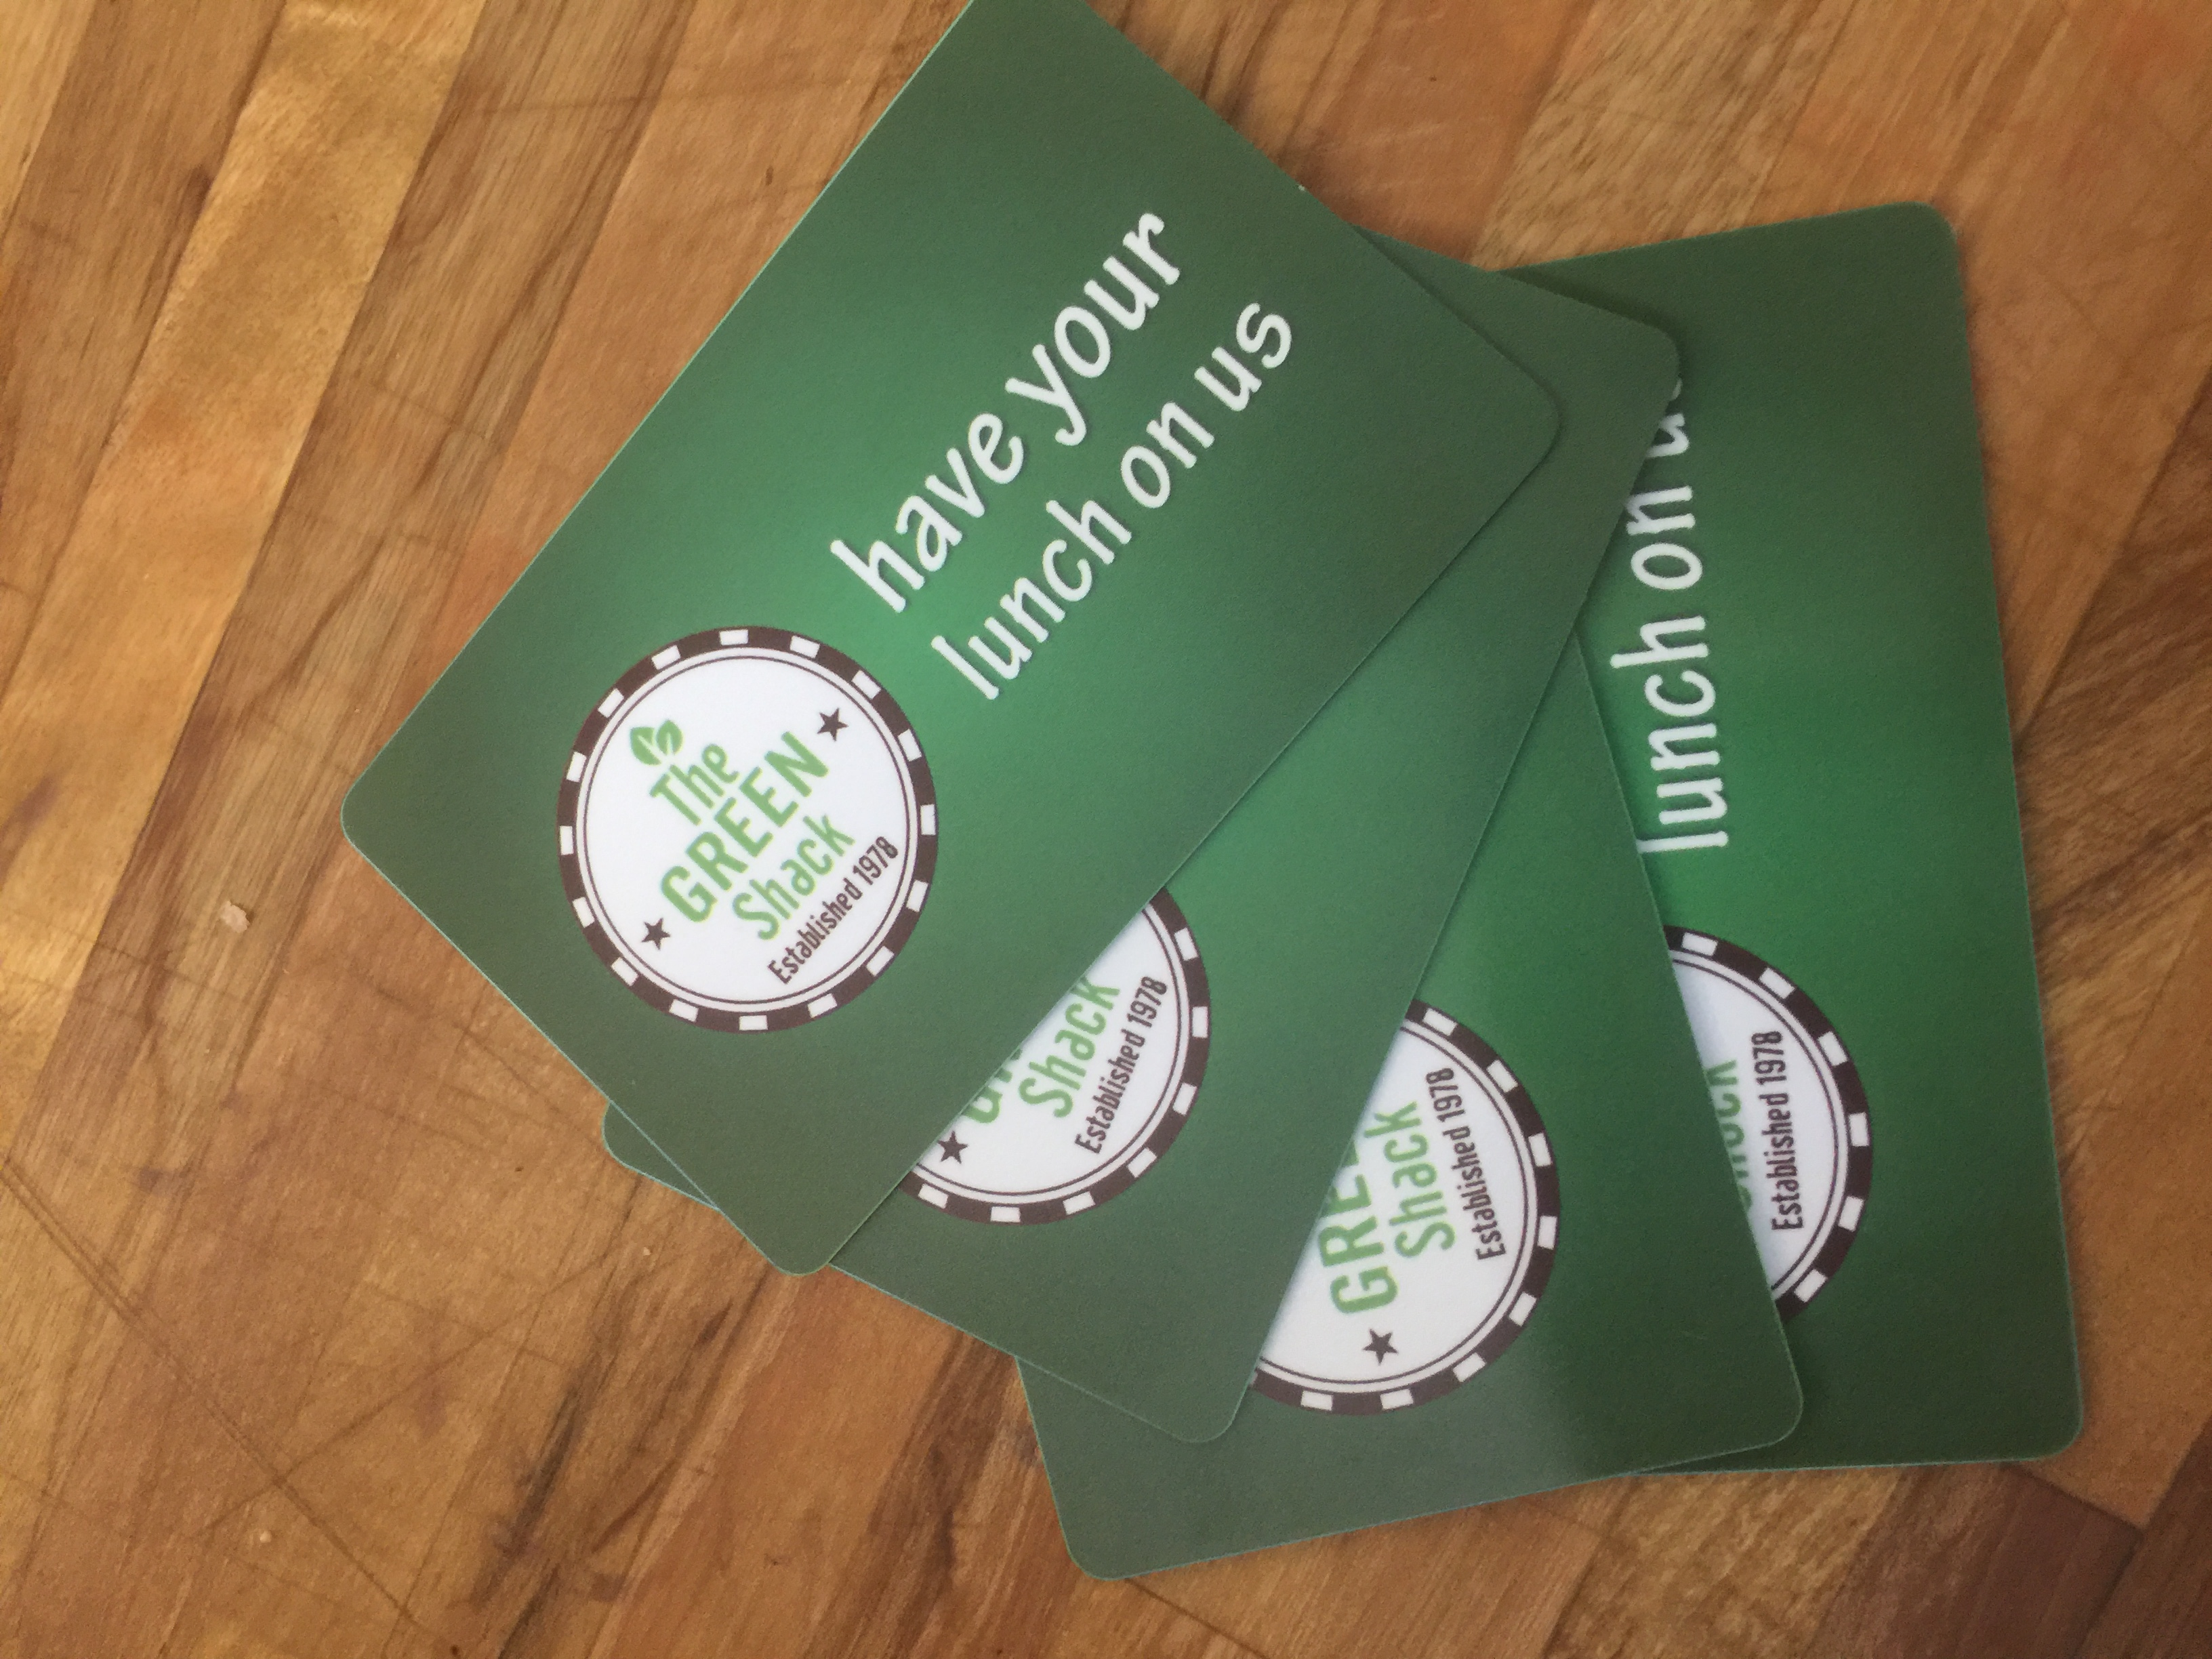 Green shack gift cards now available green shack you can now get yourself or someone else a green shack gift card simply ask for a gift card at the register load it up with as much money as solutioingenieria